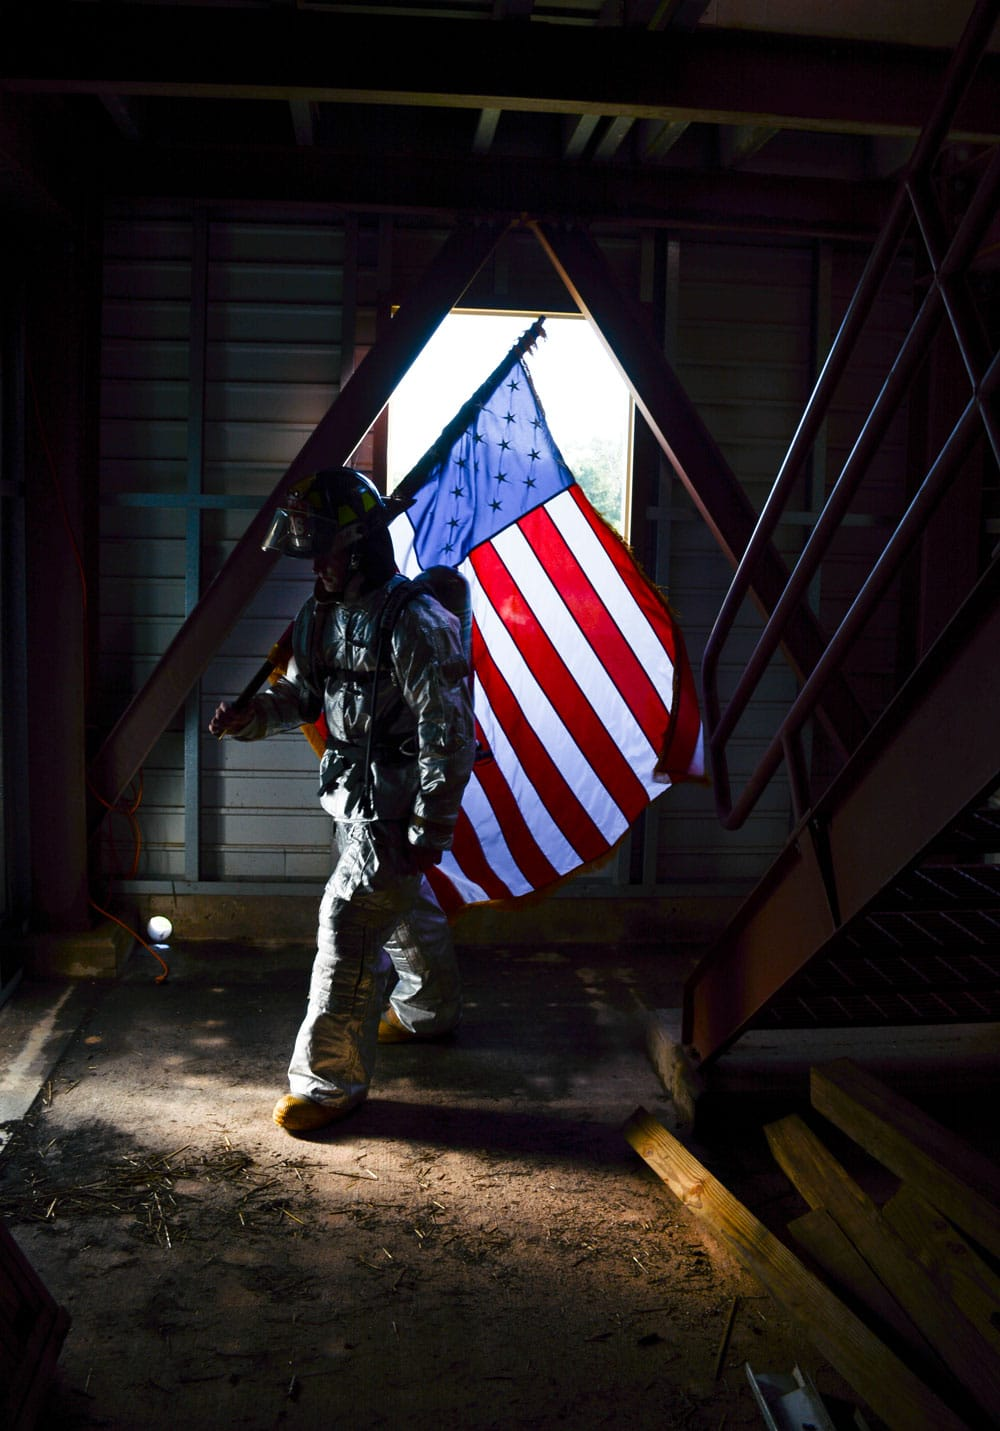 US flag during the 5th Annual Fire Climb Sept. 7, at the fire training tower at Tinker Air Force Base, Oklahoma.